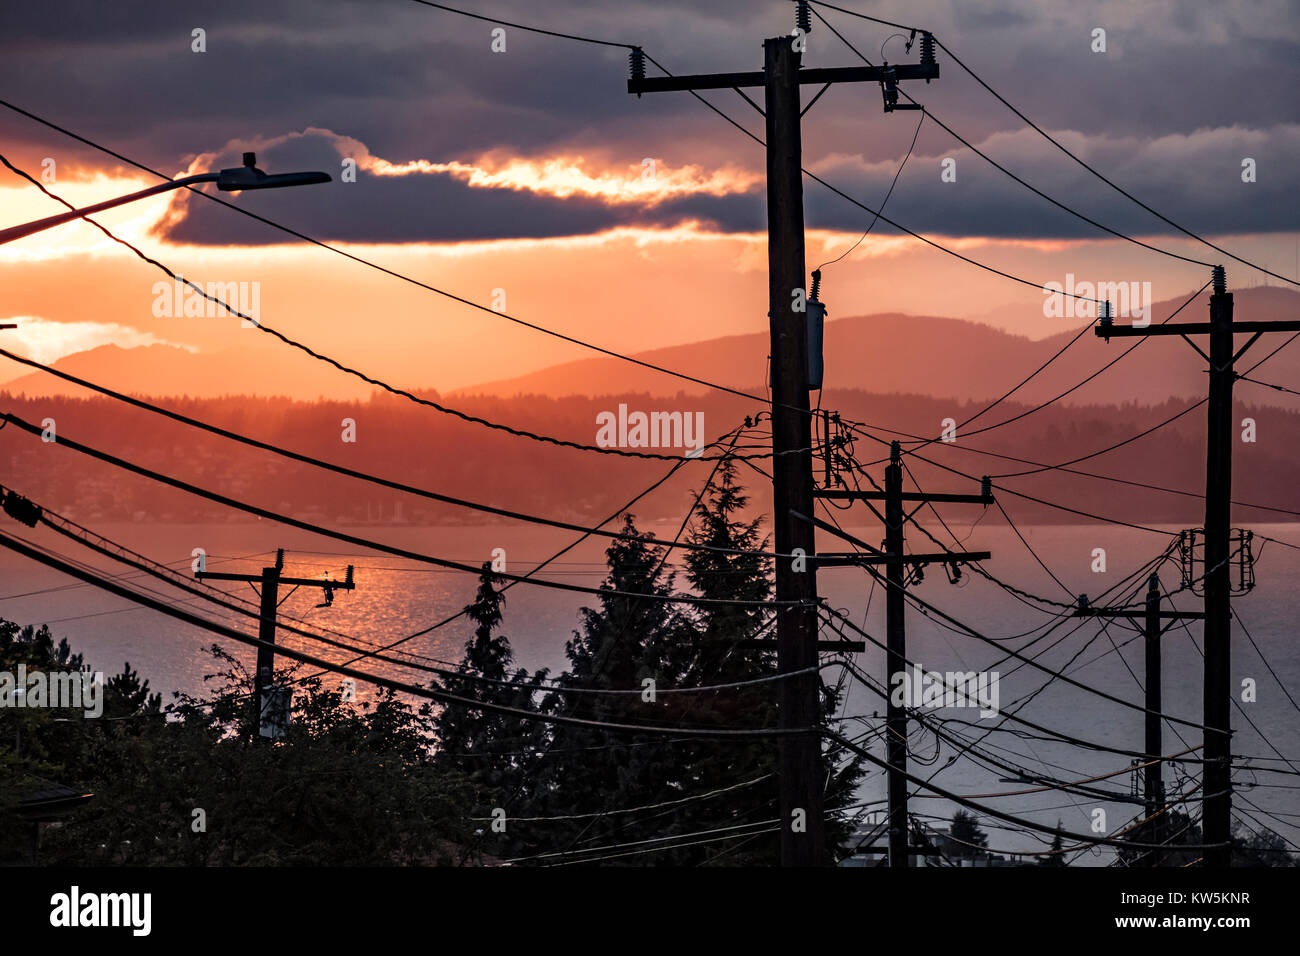 Powerlines and telephone poles in veiw of Puget Sound, Seattle, Washington, USA - Stock Image